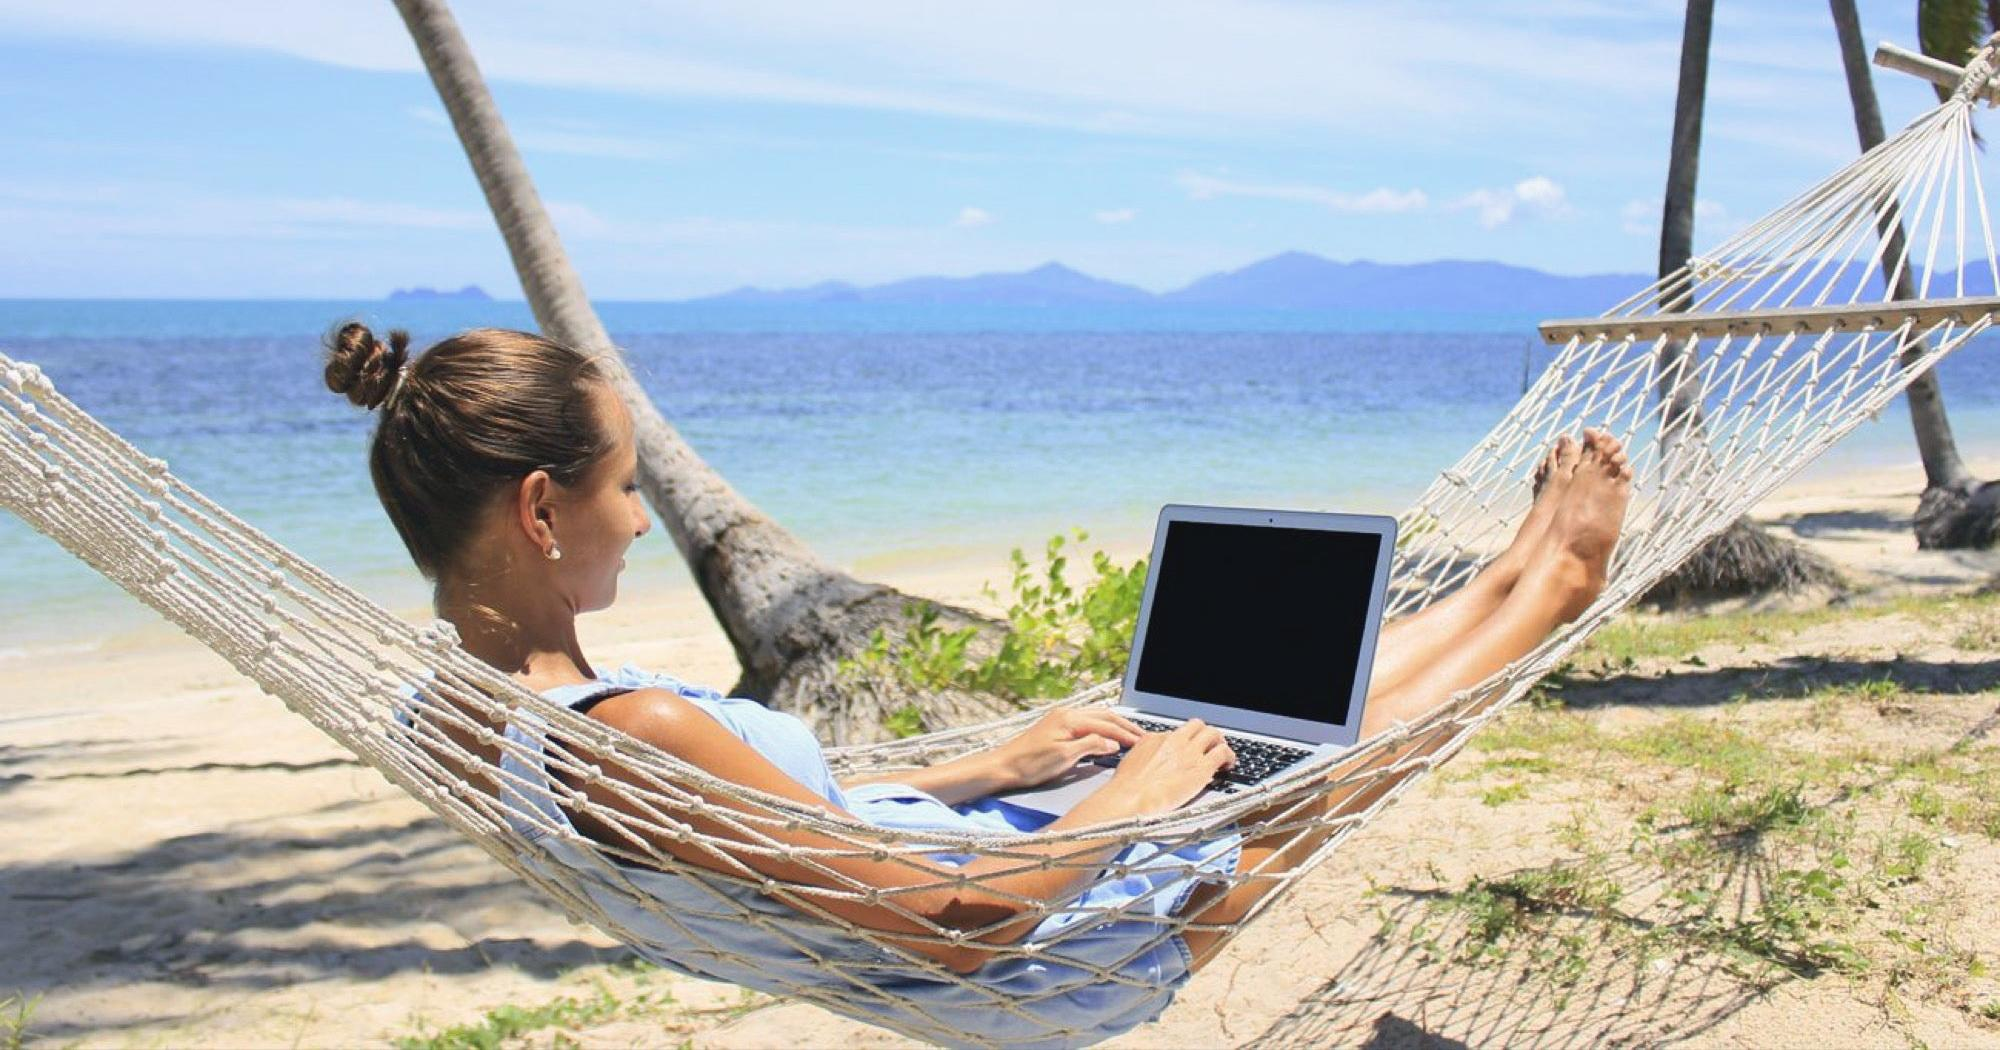 Digital nomad working on the beach.